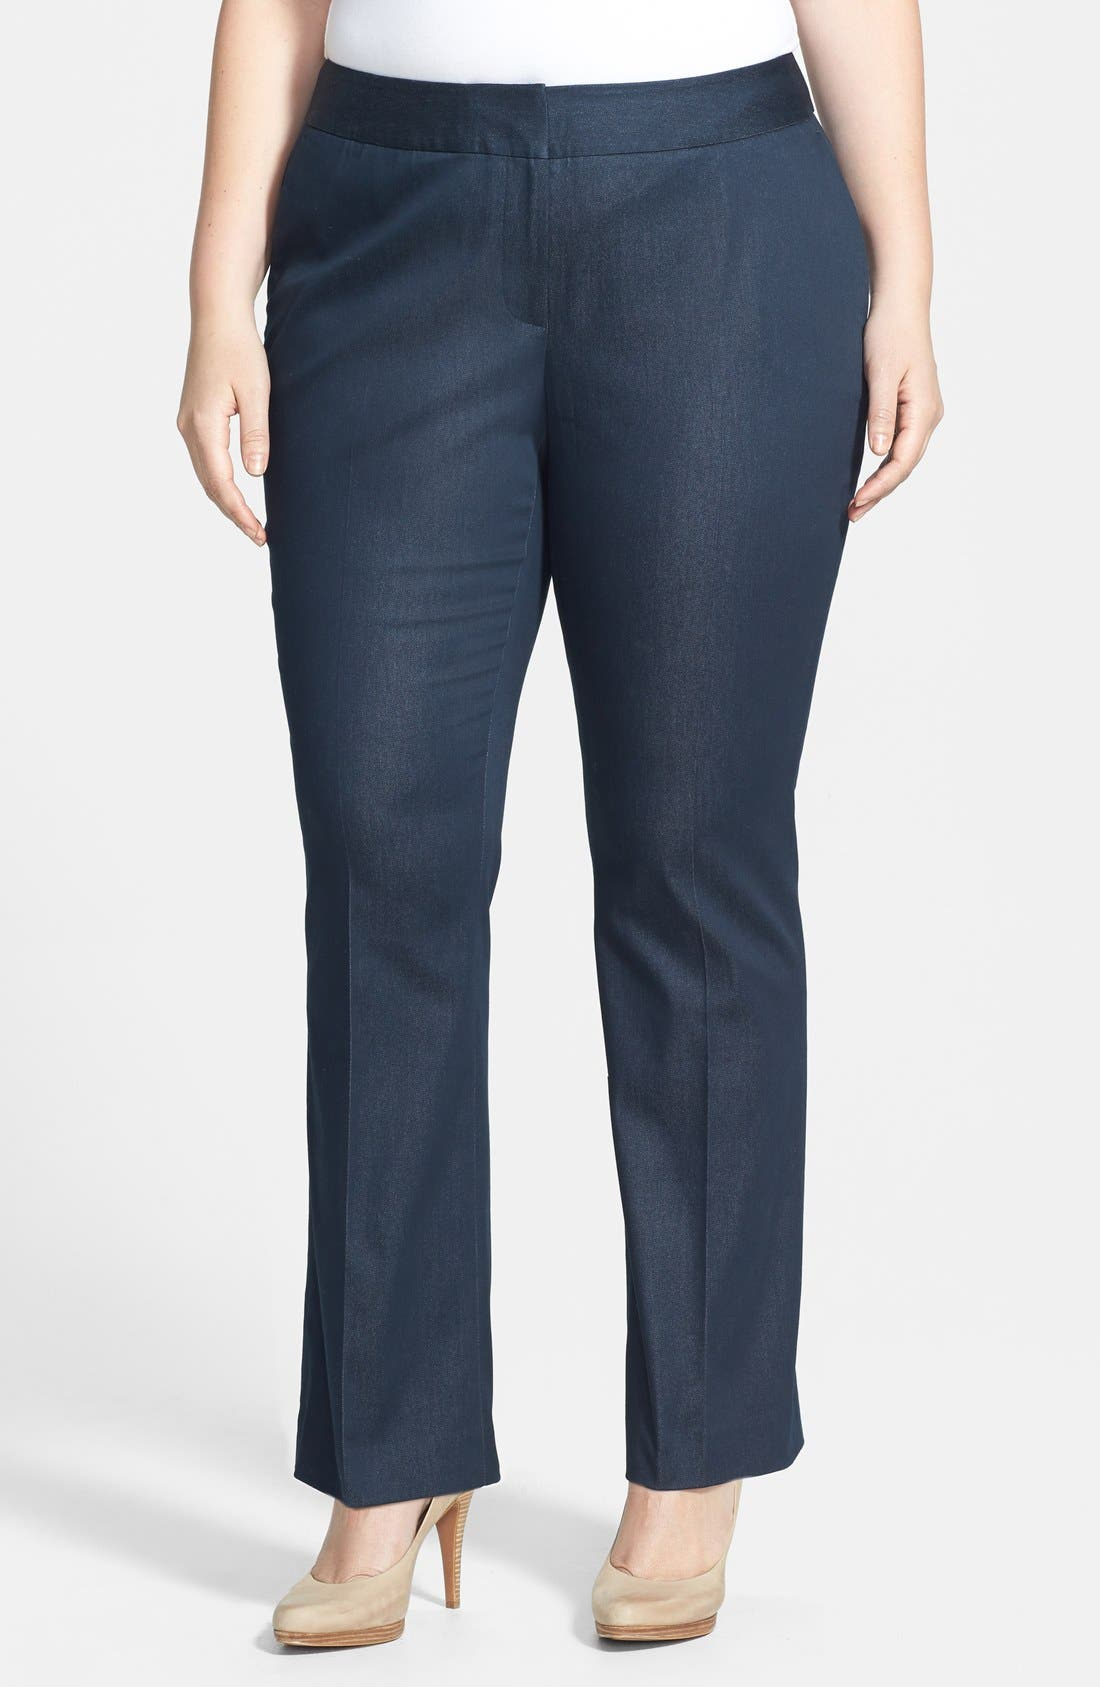 Alternate Image 1 Selected - Vince Camuto Straight Leg Pants (Plus Size)